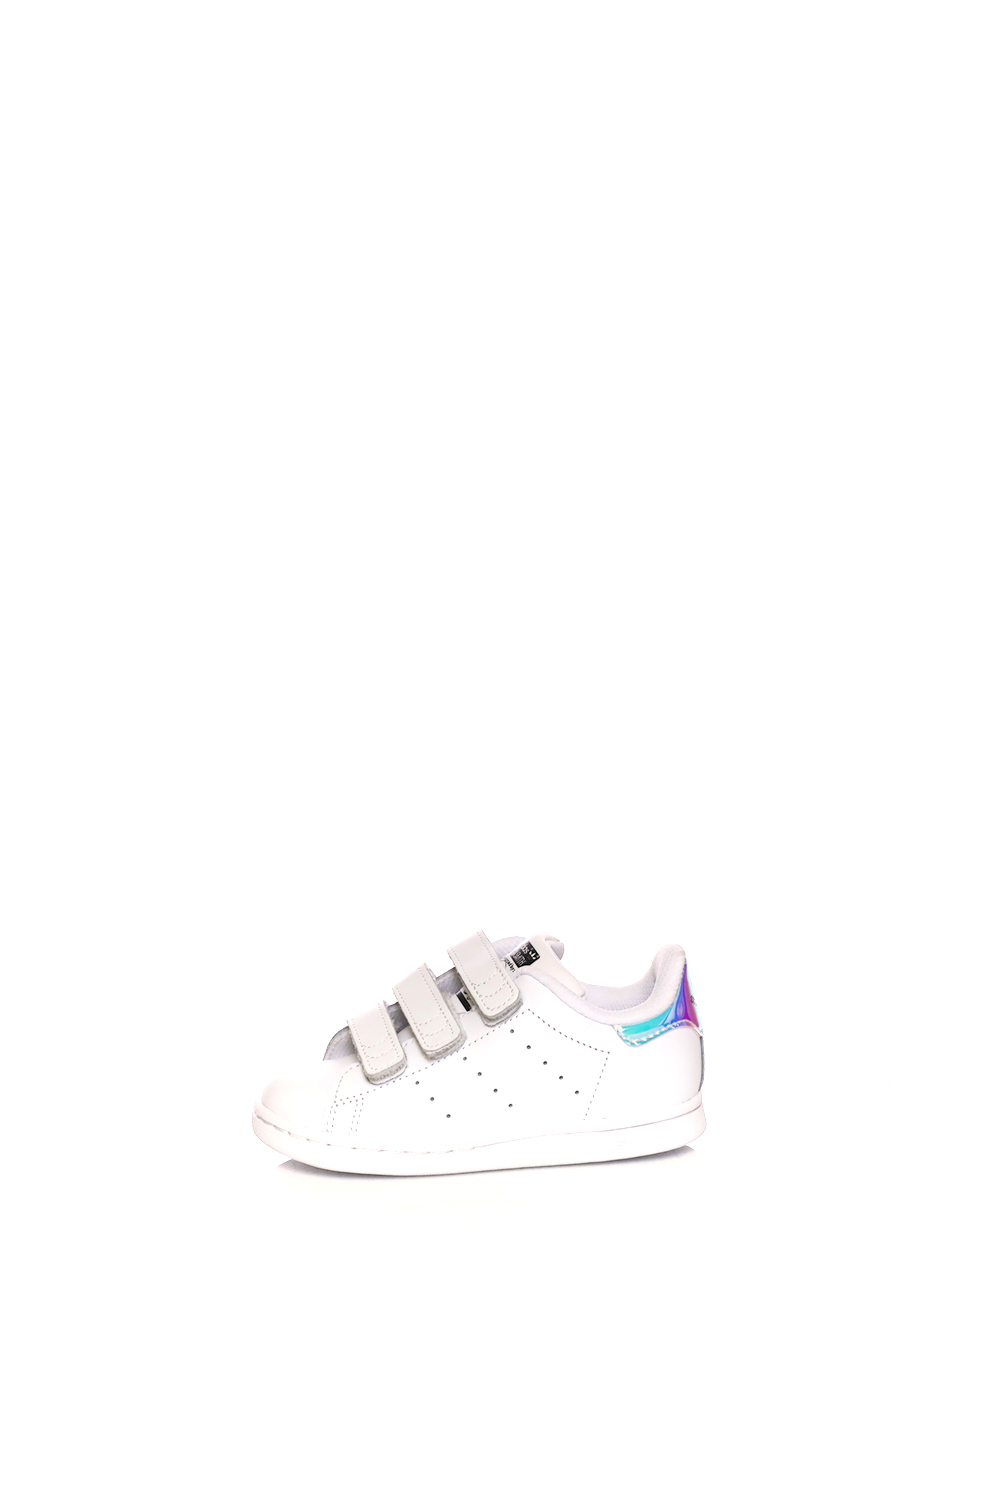 ed7b9bf0cef Collective Online adidas Originals – Βρεφικά παπούτσια STAN SMITH CF I λευκά